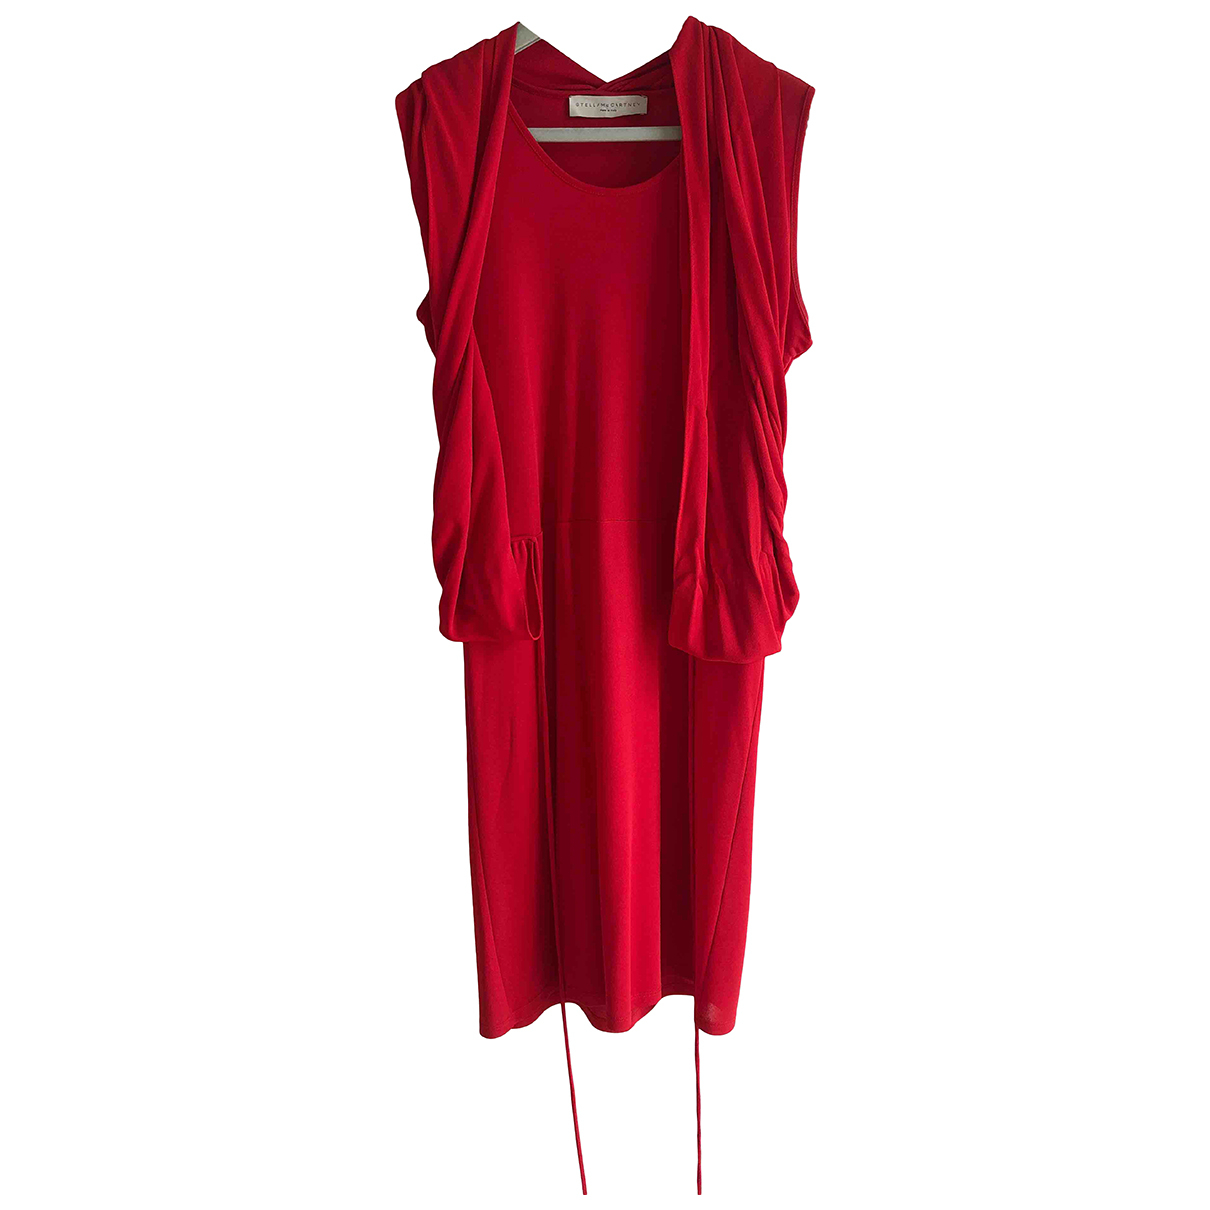 Stella Mccartney N Red dress for Women 40 FR